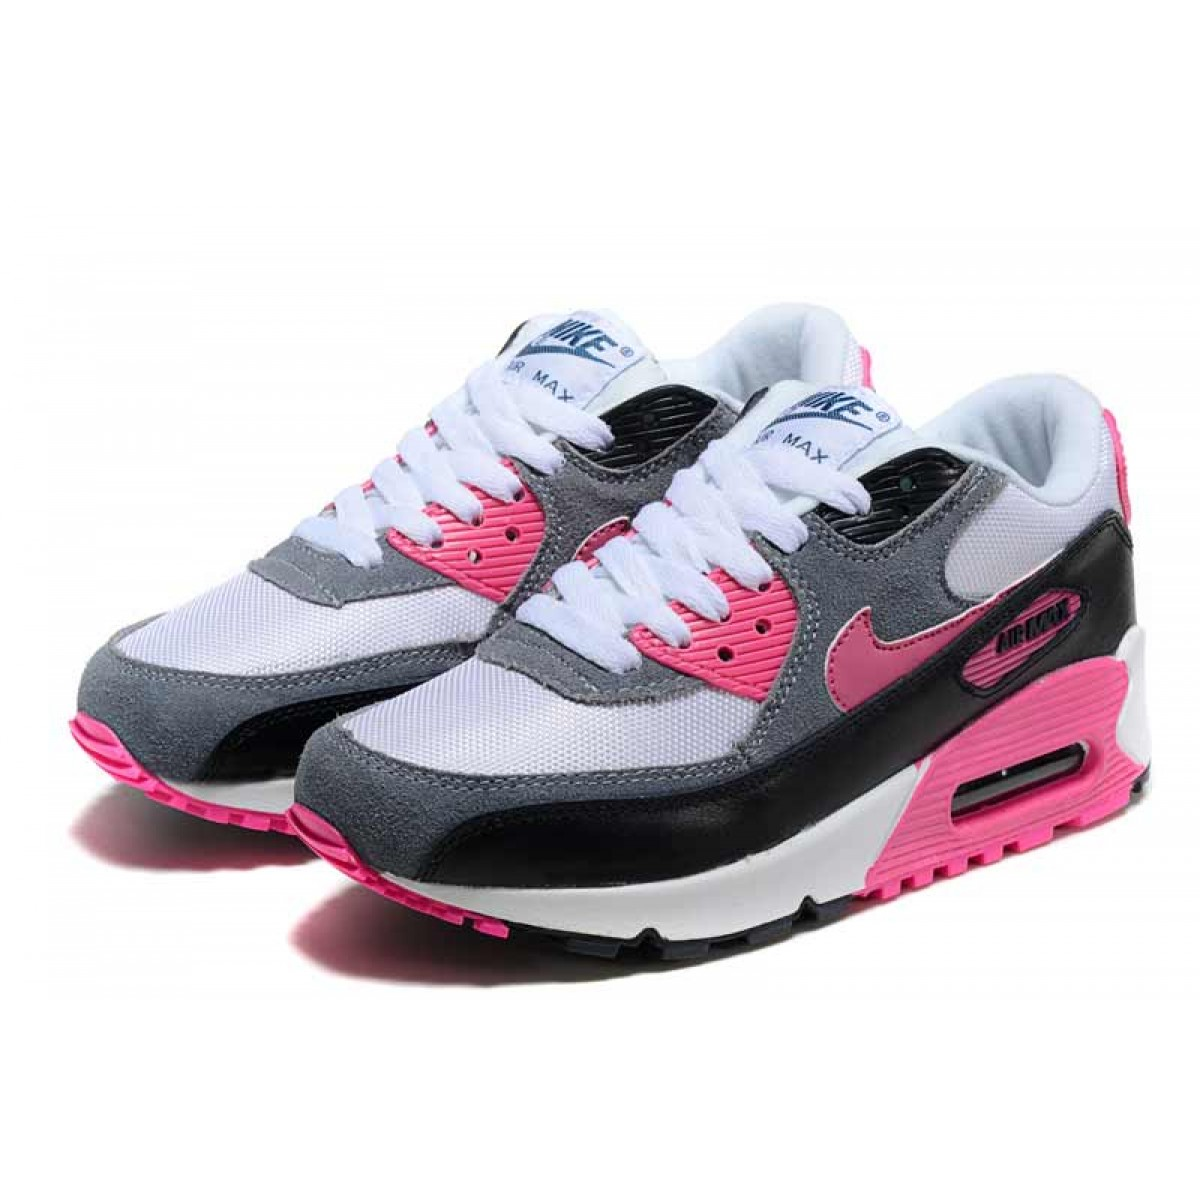 new style ee068 24294 ... official store achat vente produits nike air max 90 femme rosenike air  max 90 femme e3203